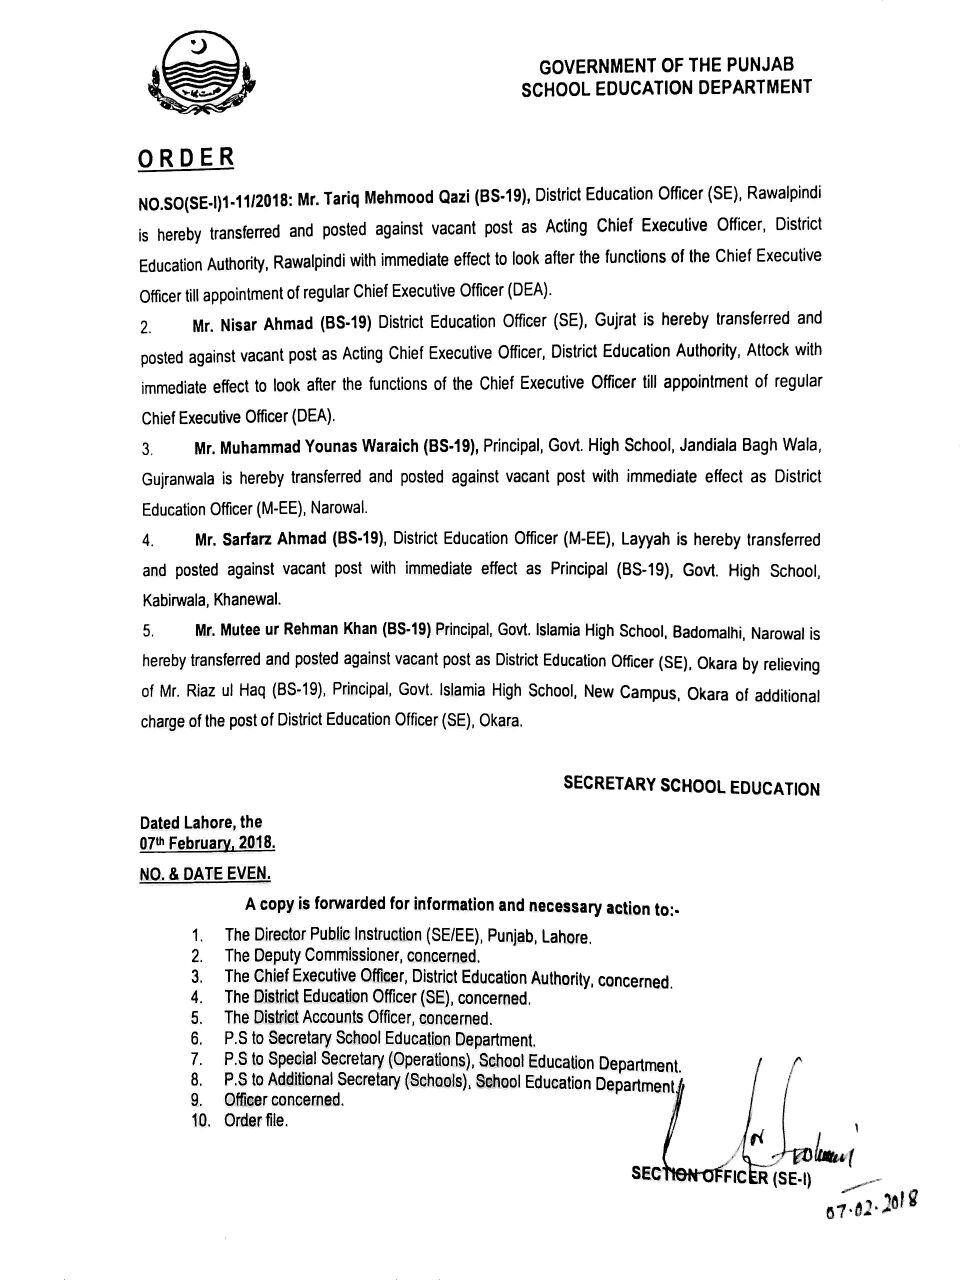 TRANSFER AND POSTING OF CEO DEO IN PUNJAB SCHOOL EDUCATION DEPARTMENT